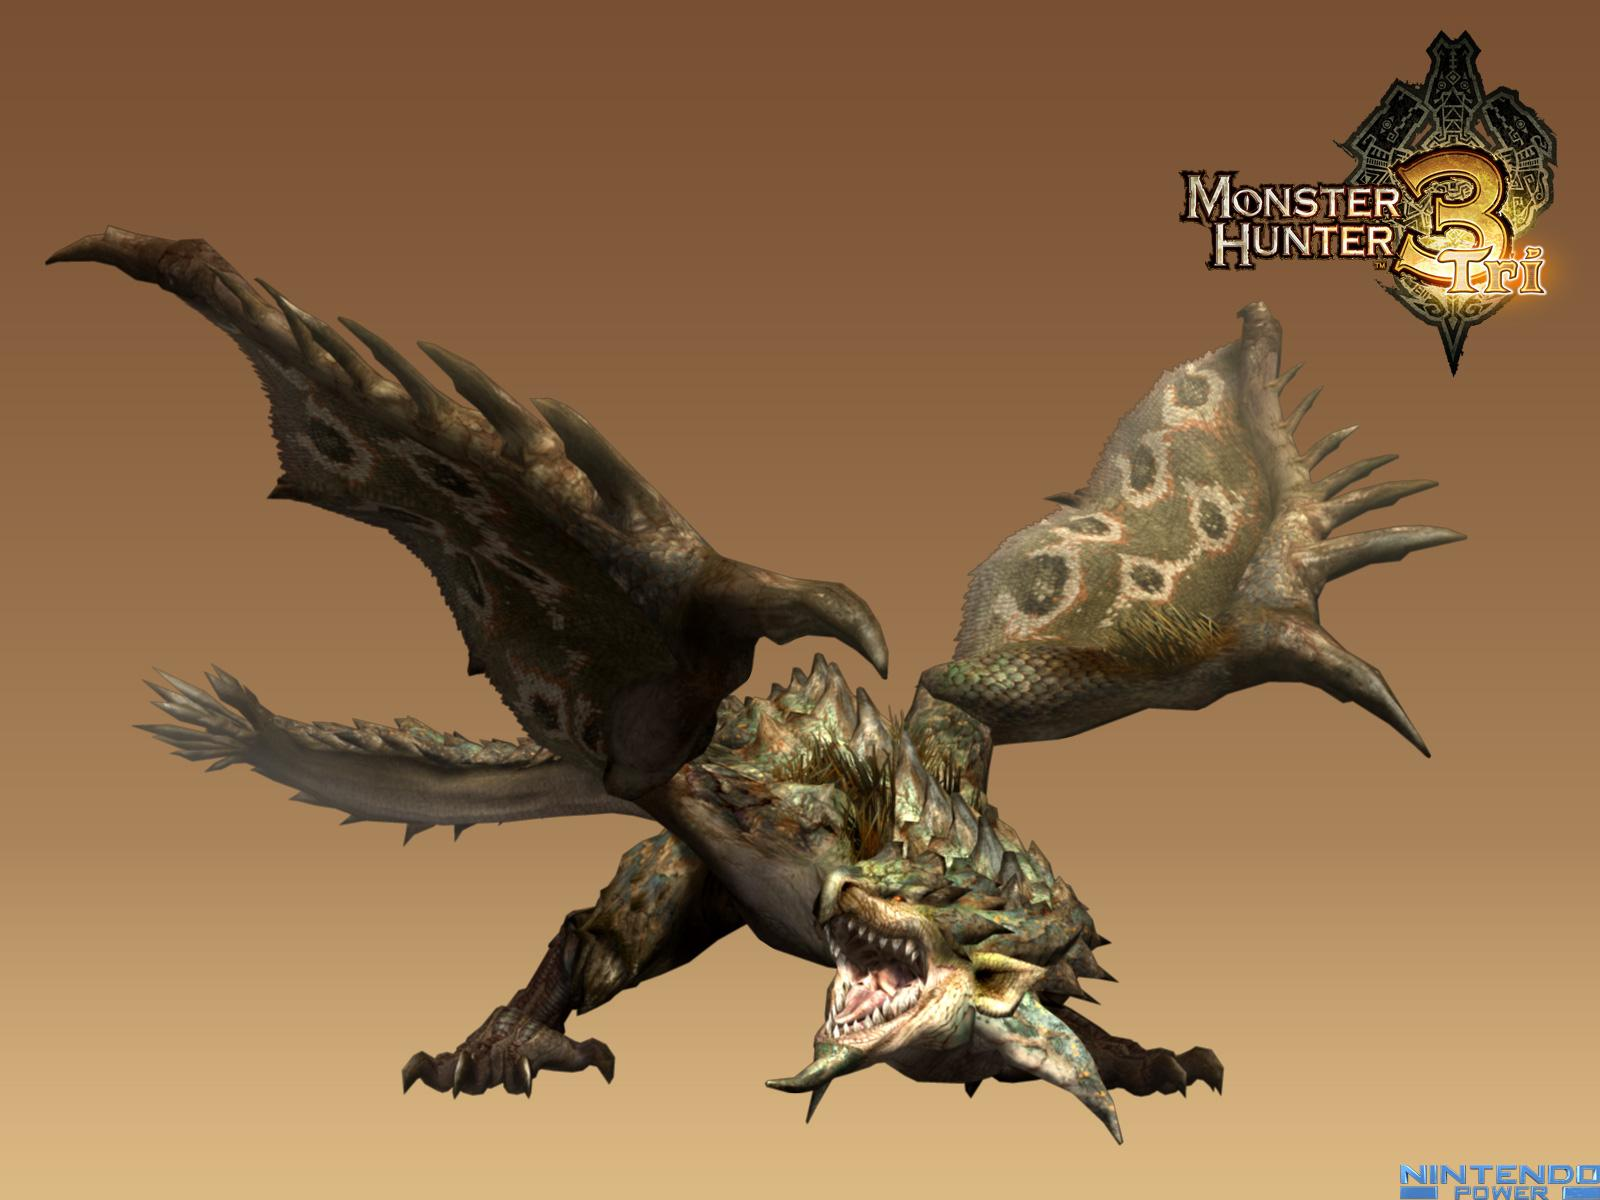 Video Game - Monster Hunter Wallpaper